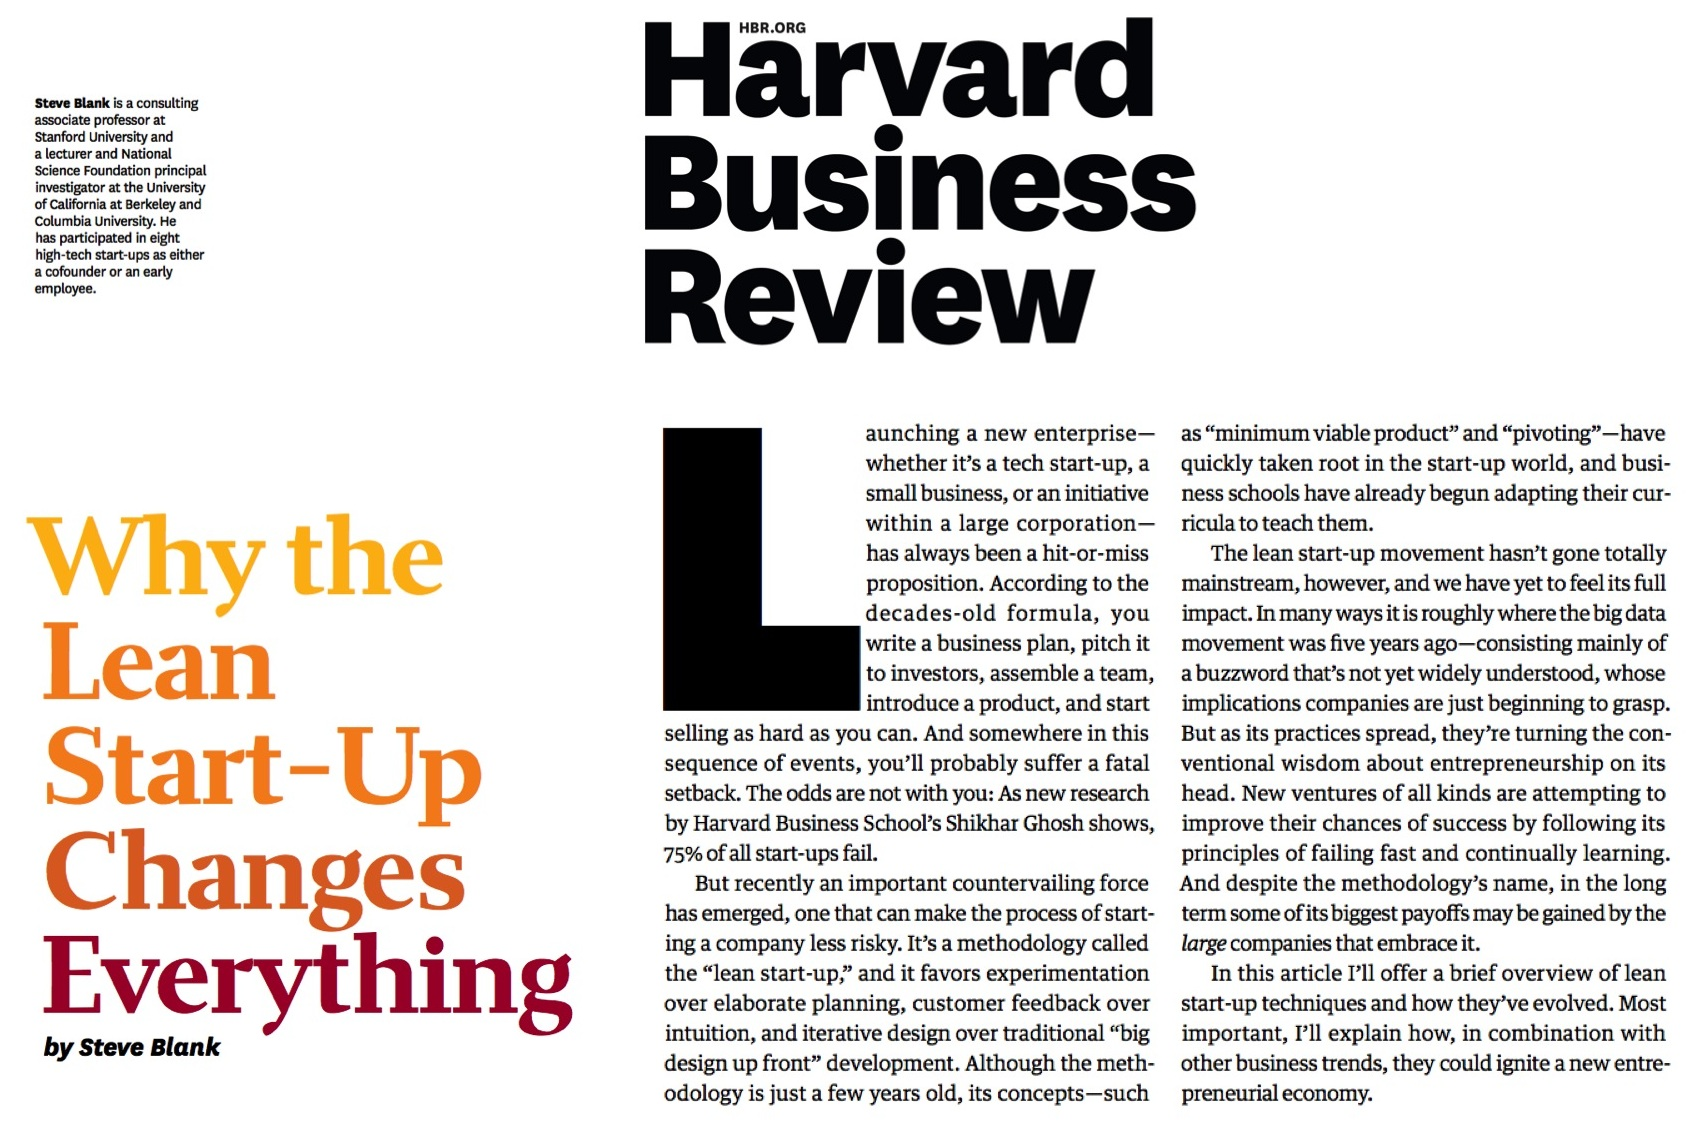 The Magazine - HBR - Harvard Business Review